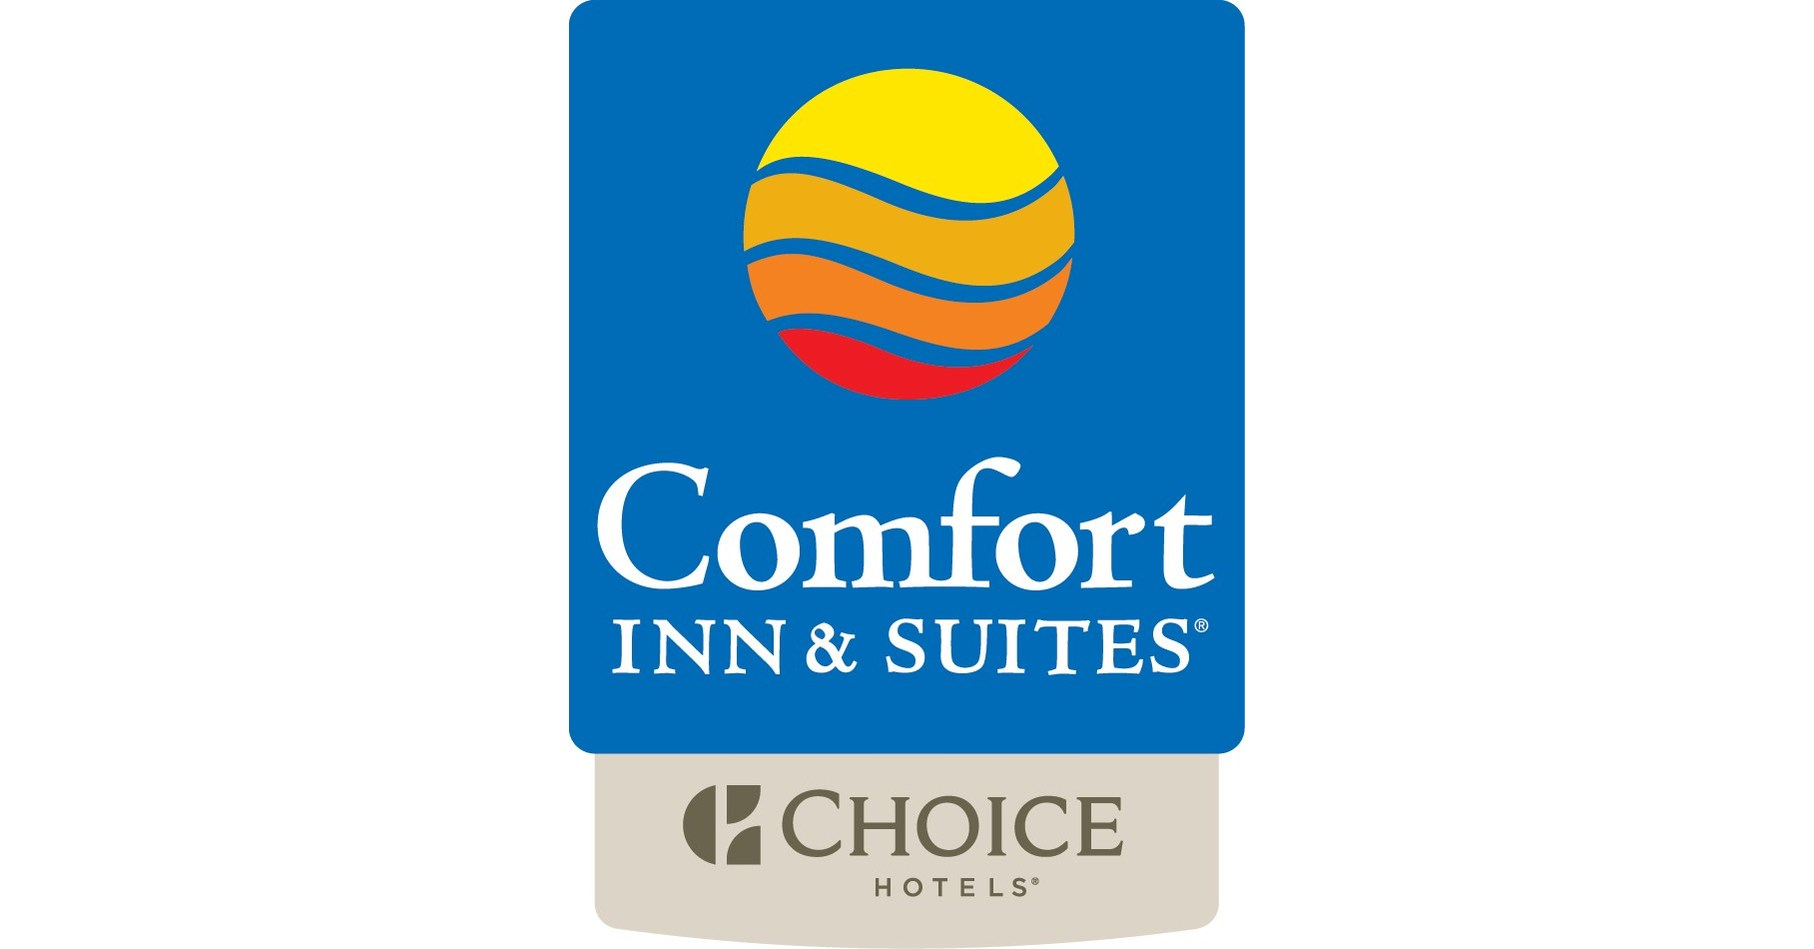 Comfort inn suites in branson mo wins hotel of the year for Choice hotels